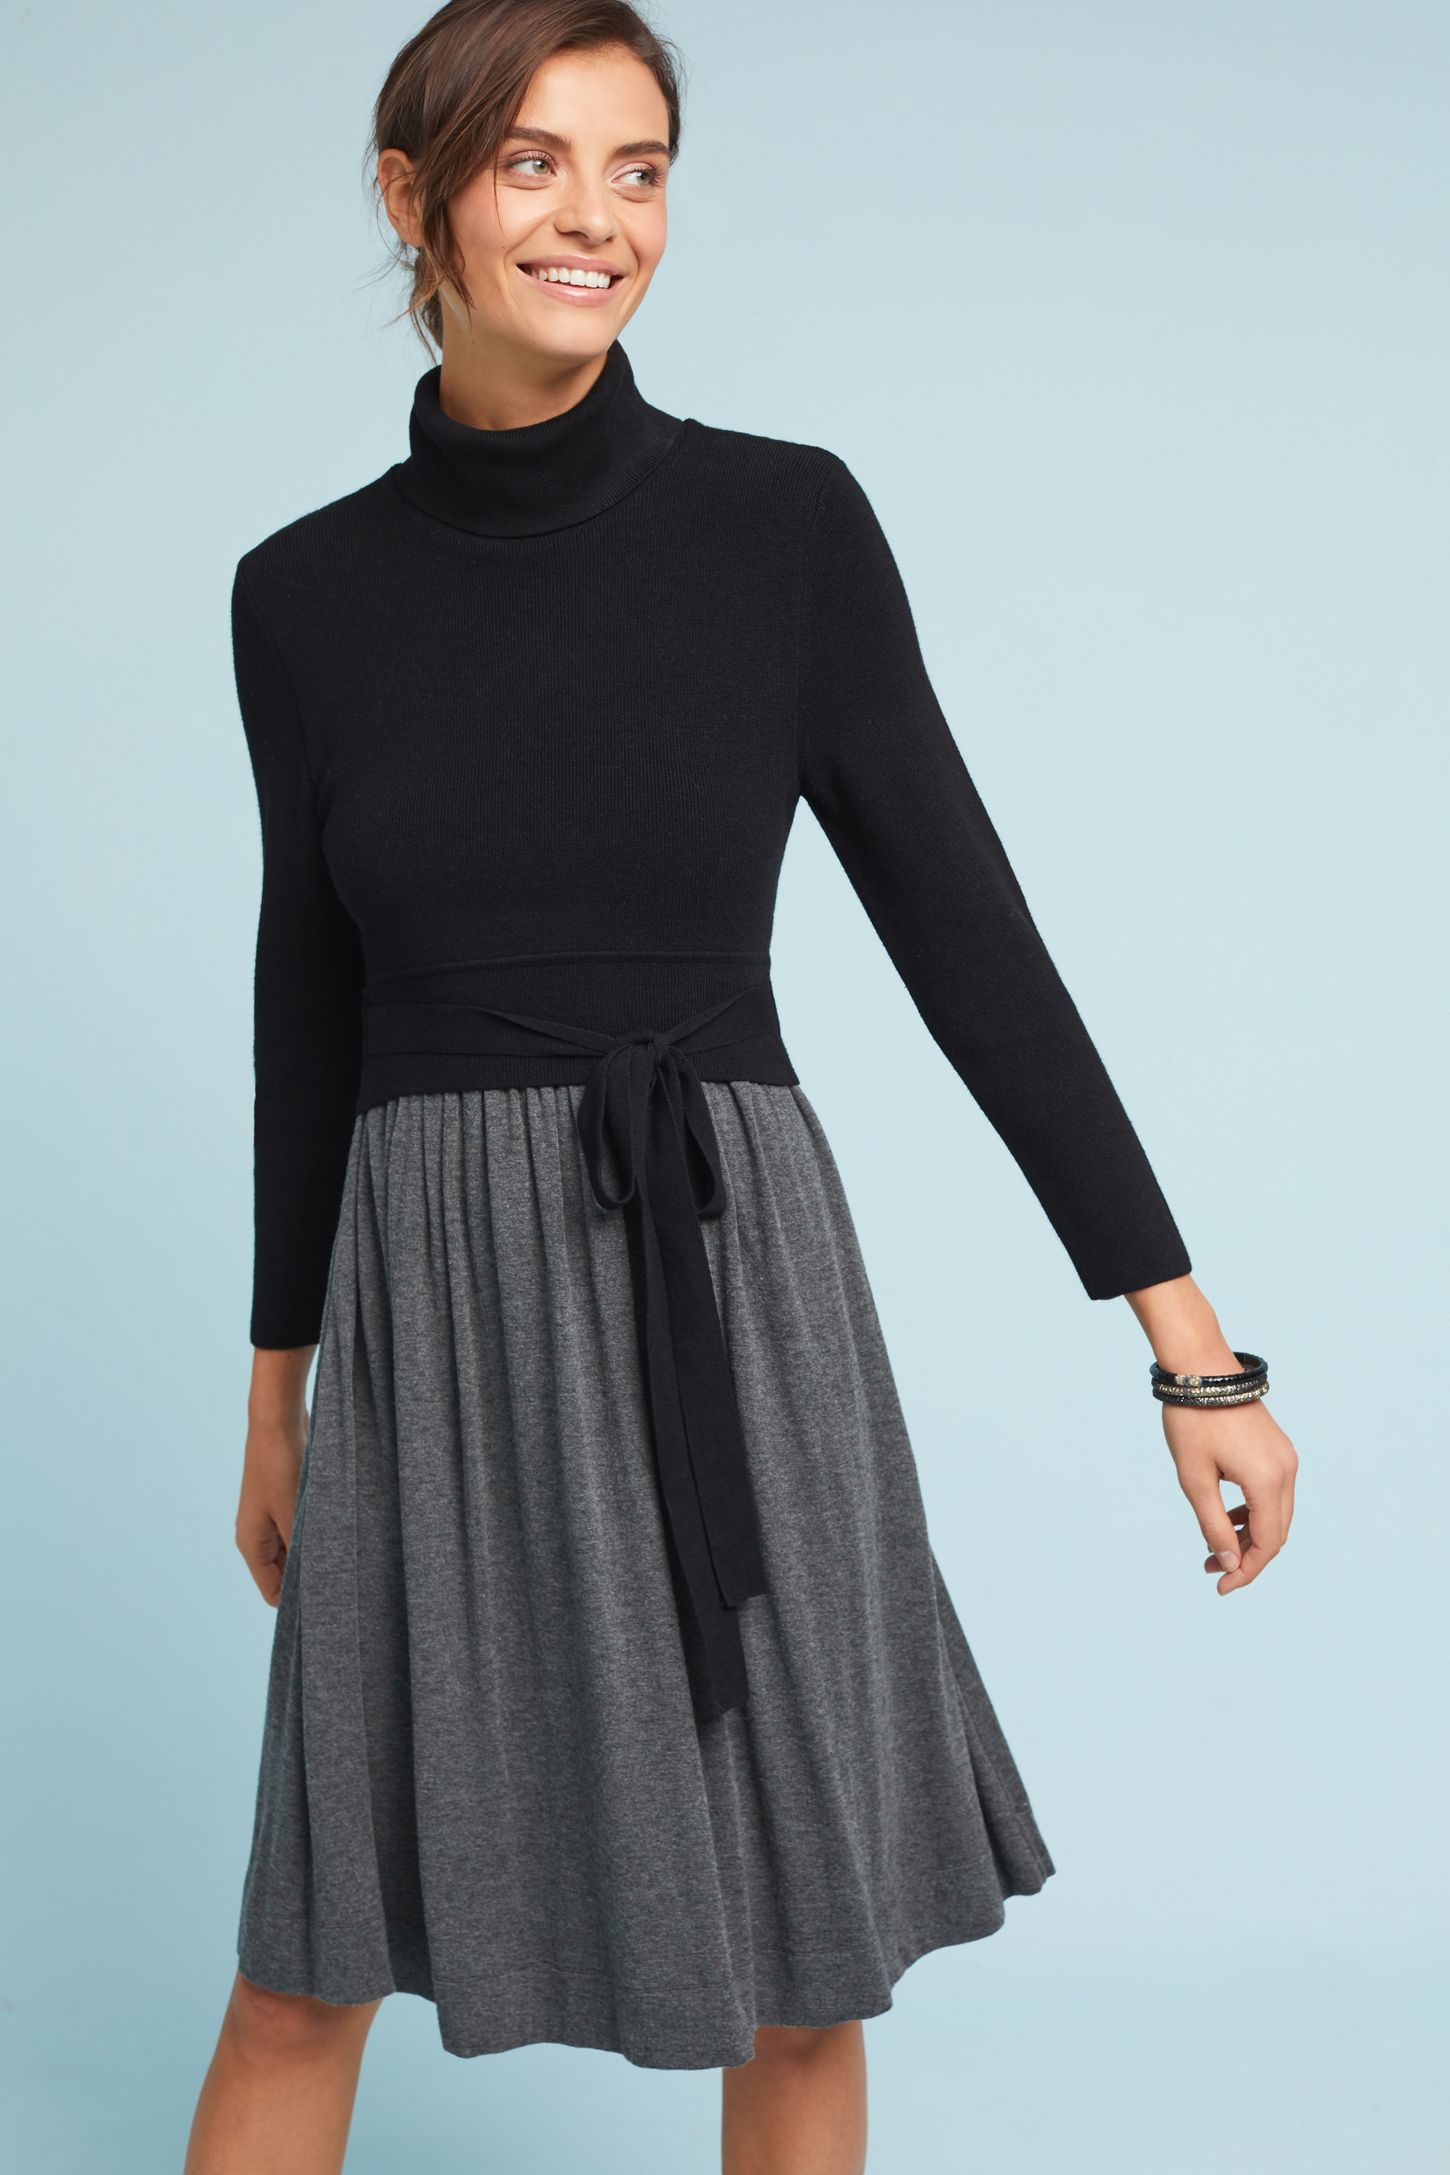 Flowy Dresses & Casual Dresses   Anthropologie